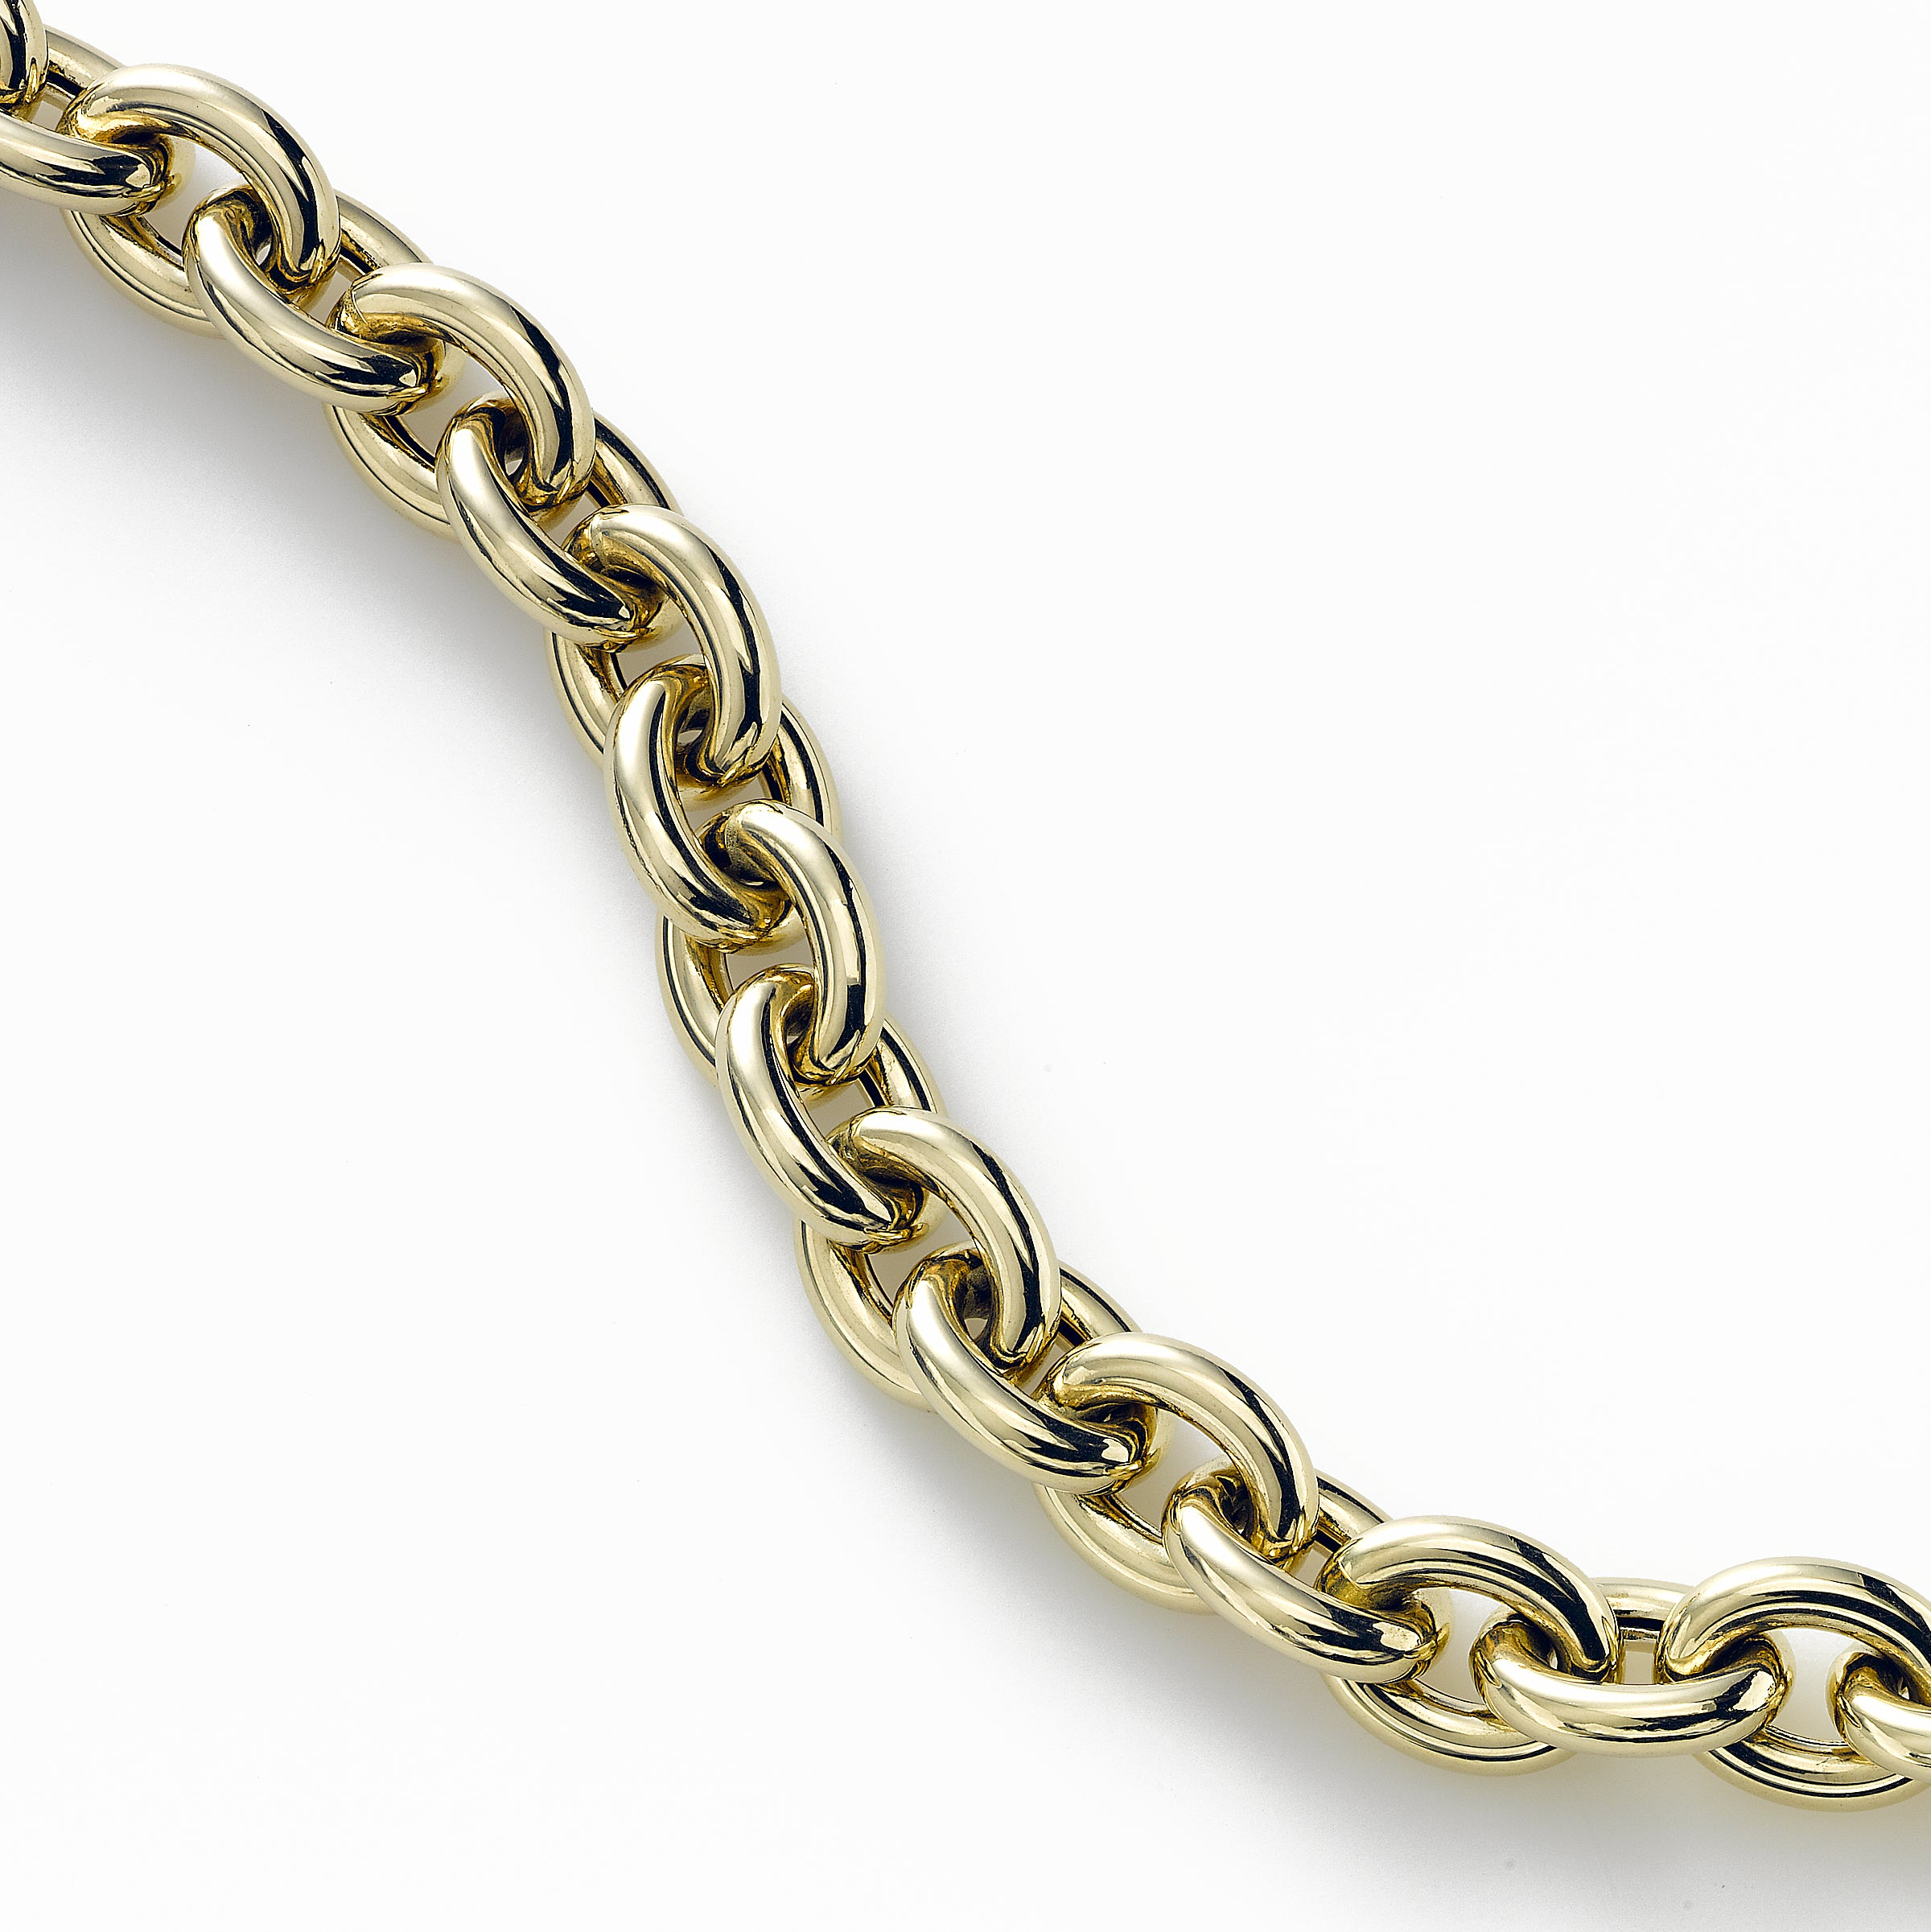 Polished Rolo Link Bracelet, 7.5 Inch, 14K Yellow Gold